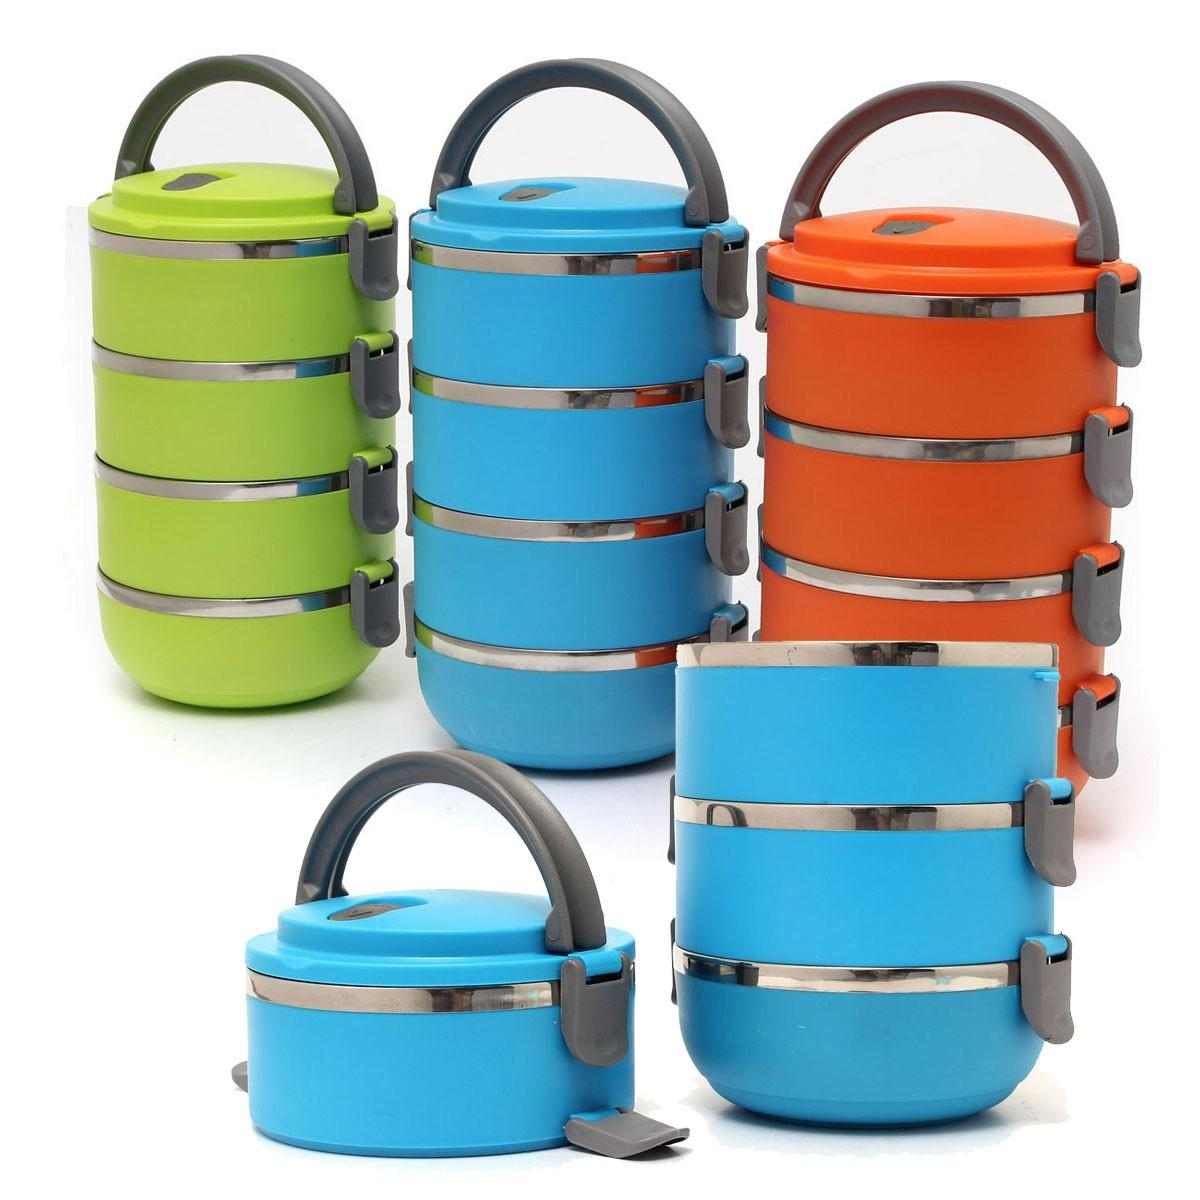 8a1ce68bd79 4 Layers Stainless Steel Portable Lunch Bento Box Thermal Insulated Lunch  Box for Food Container - Orange COD